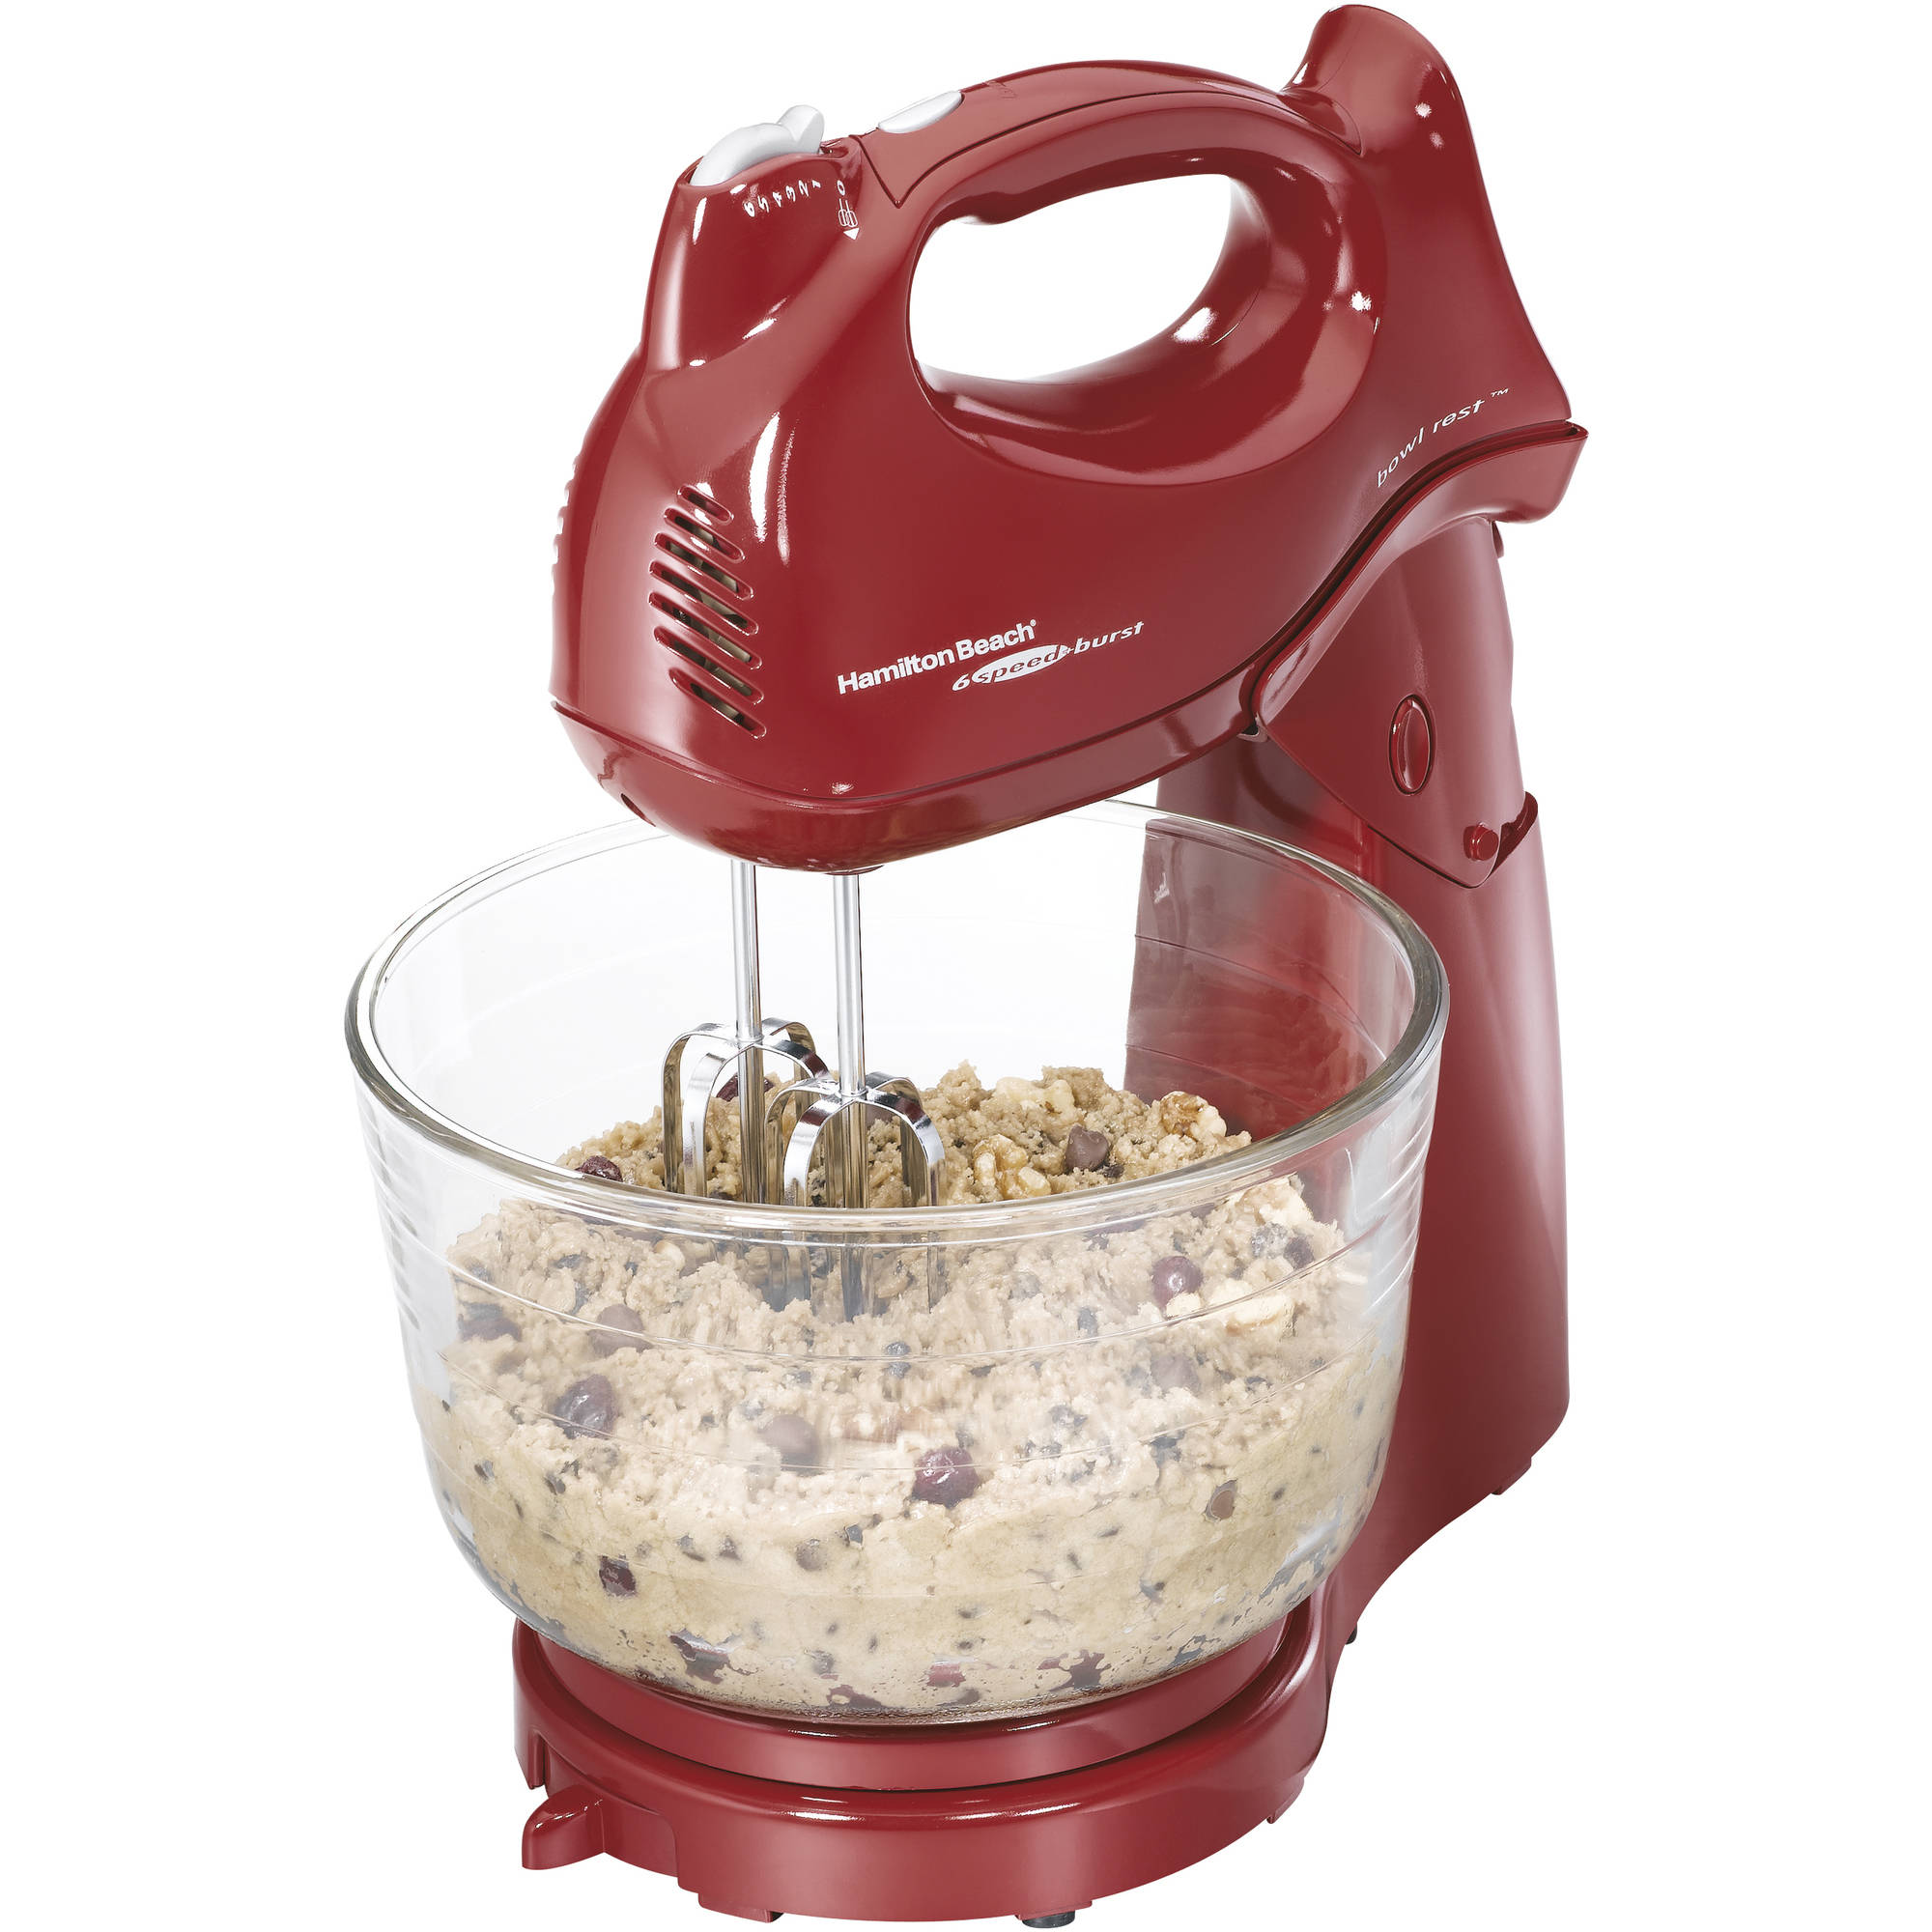 Hamilton Beach Power Deluxe 4 Qt. Stand Mixer | Model# 64699